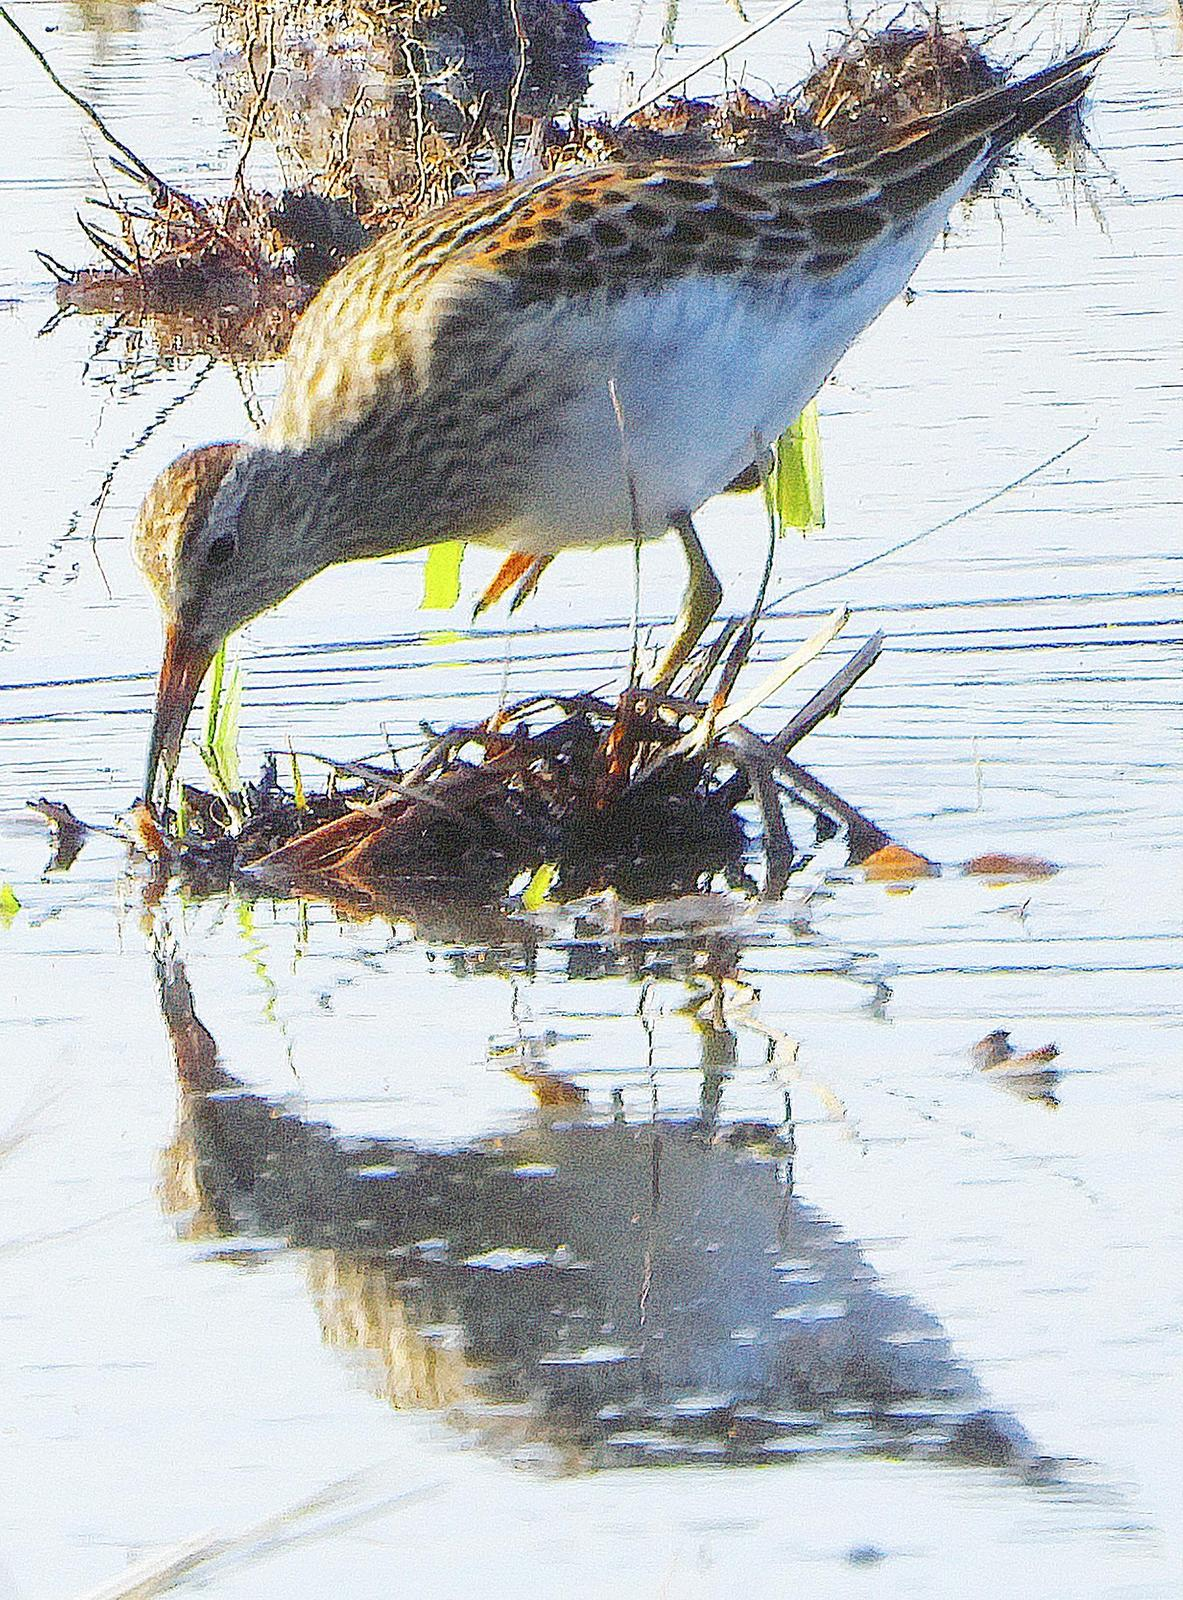 Pectoral Sandpiper Photo by Dan Tallman